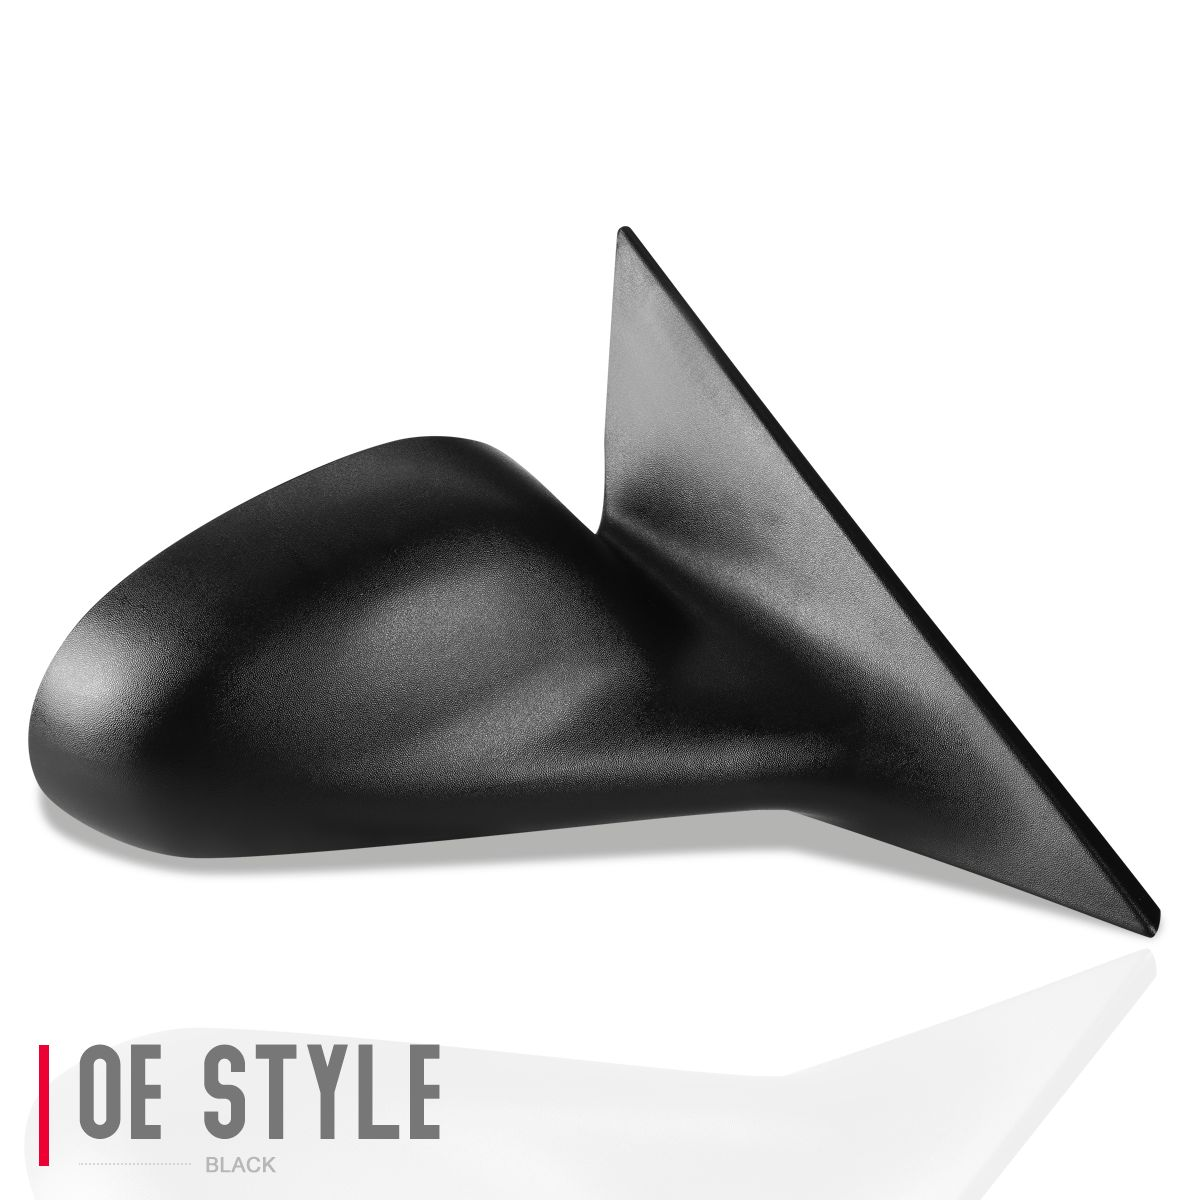 New FO1321162 Passenger Side Mirror for Ford Mustang 1996-1998